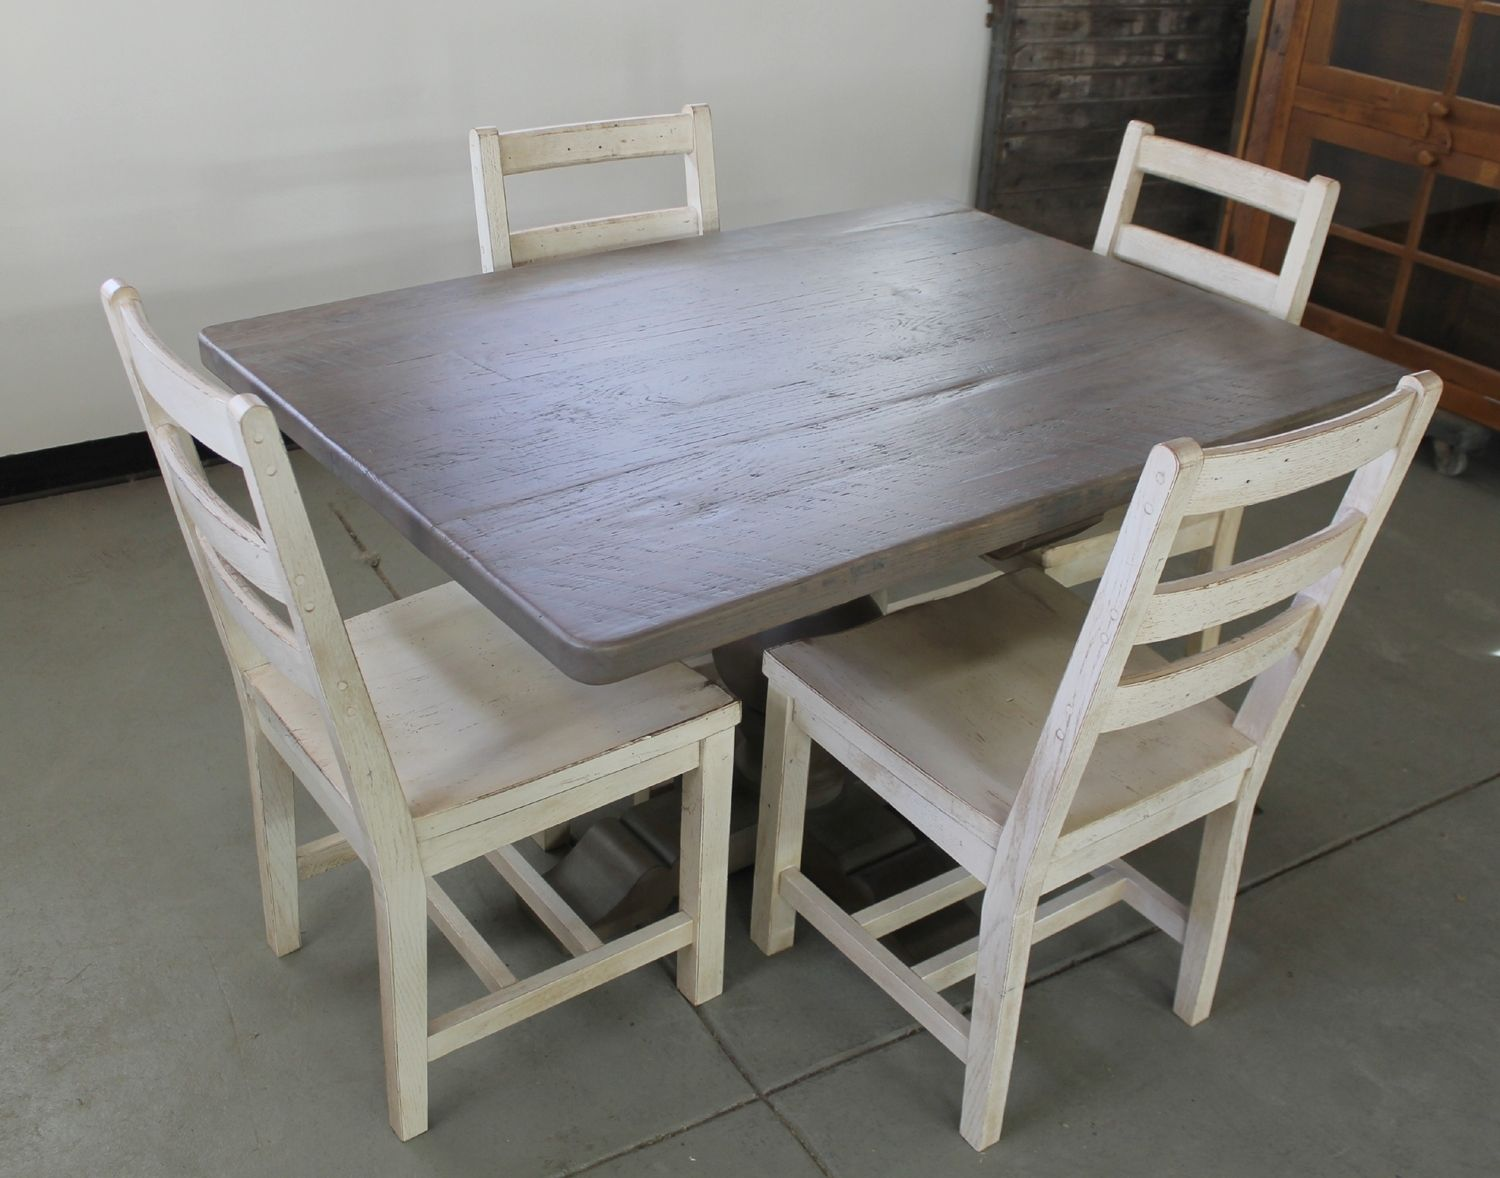 Custom Made Old Oak Pedestal Table In Driftwood Finish Seen With - Driftwood dining table set